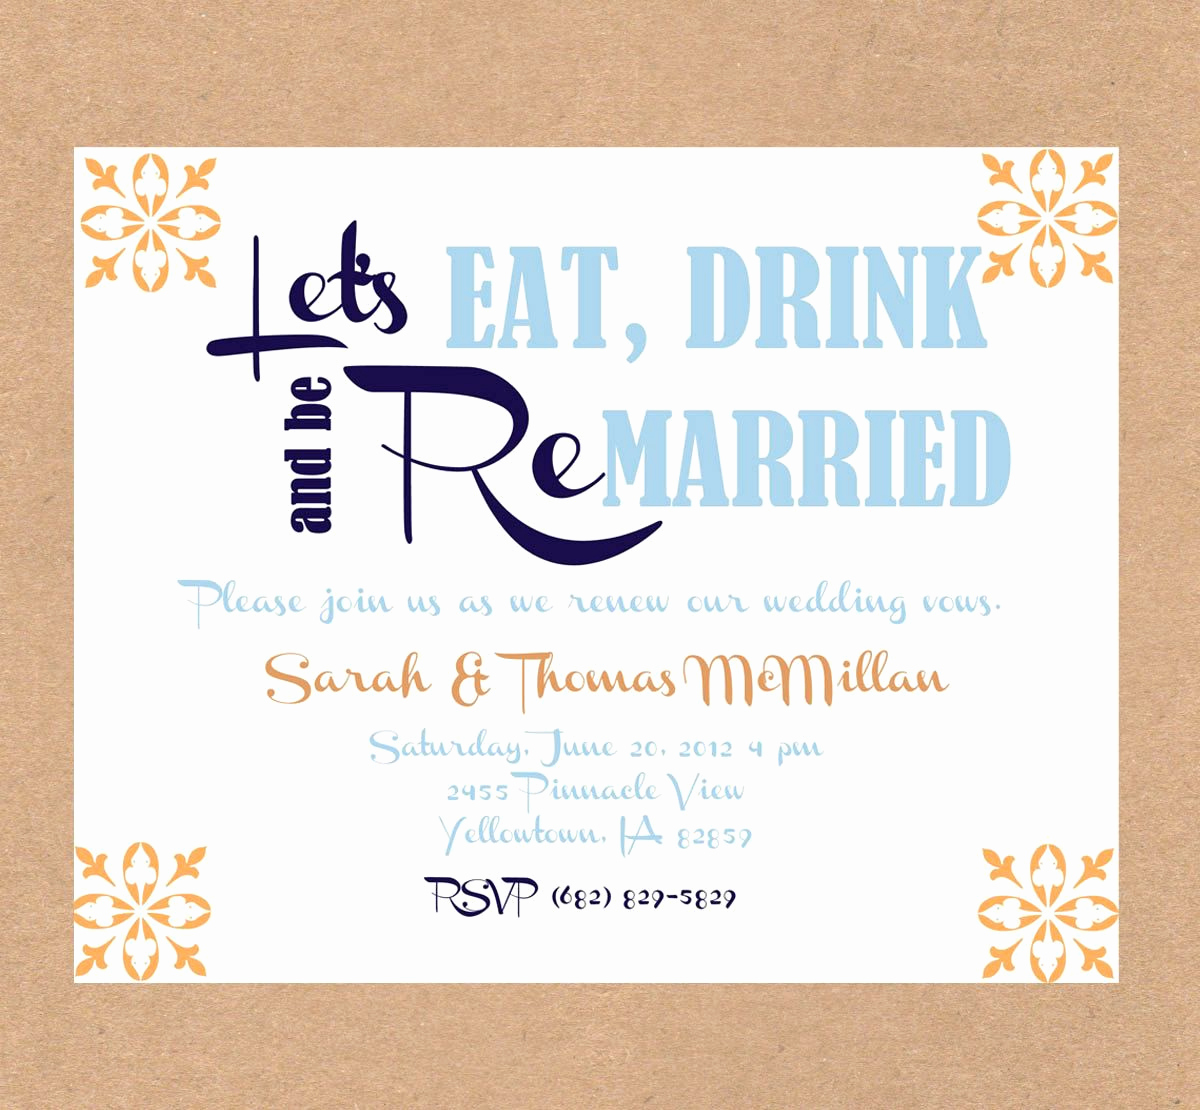 Funny Vow Renewal Invitation Wording Fresh Vow Renewal Invitation Eat Drink and Be Married